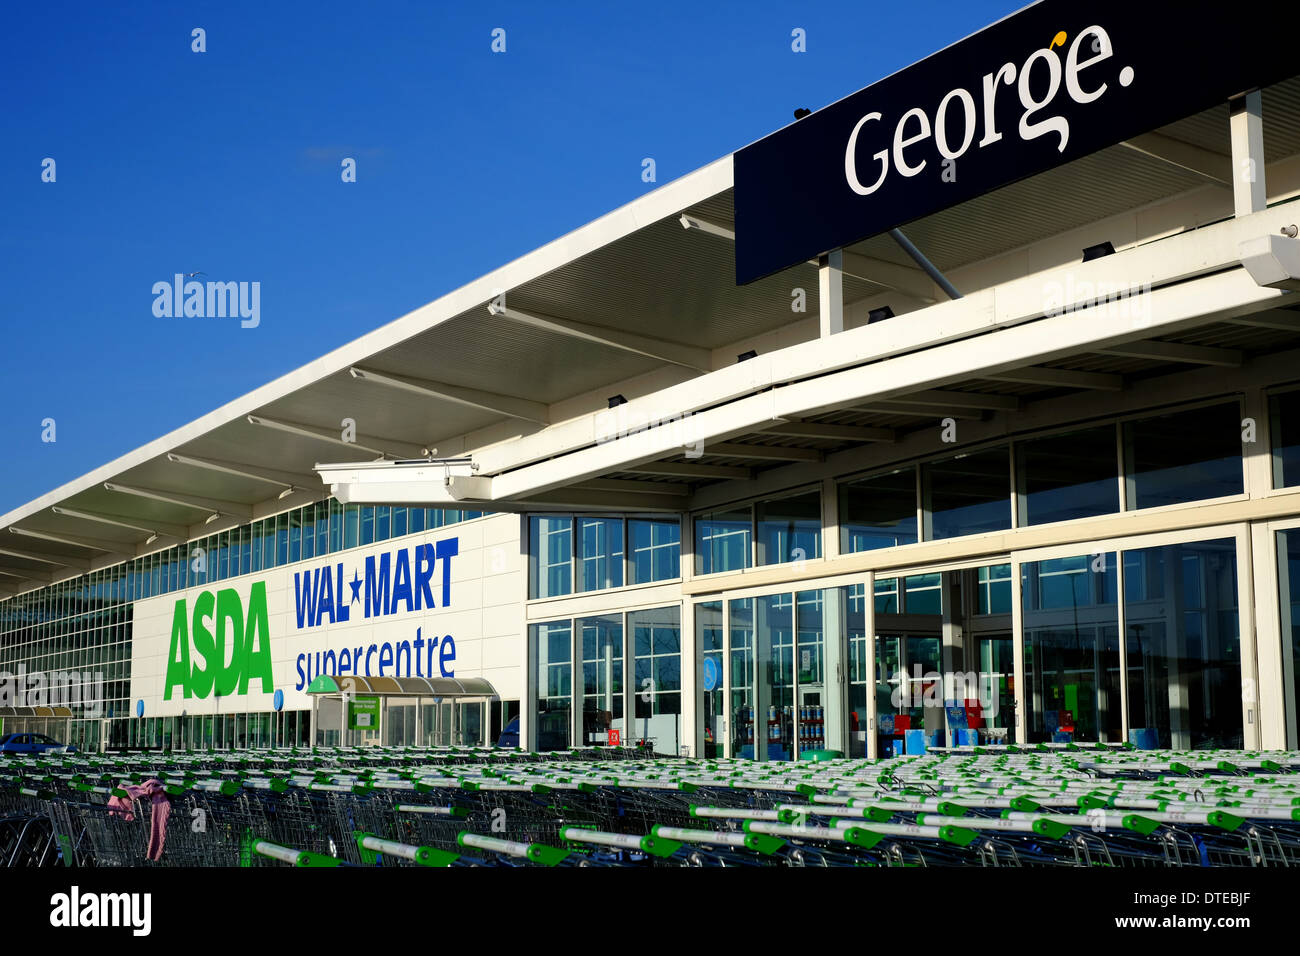 walmart superstore stock photos walmart superstore stock images exterior view of the asda walmart superstore in milton keynes stock image